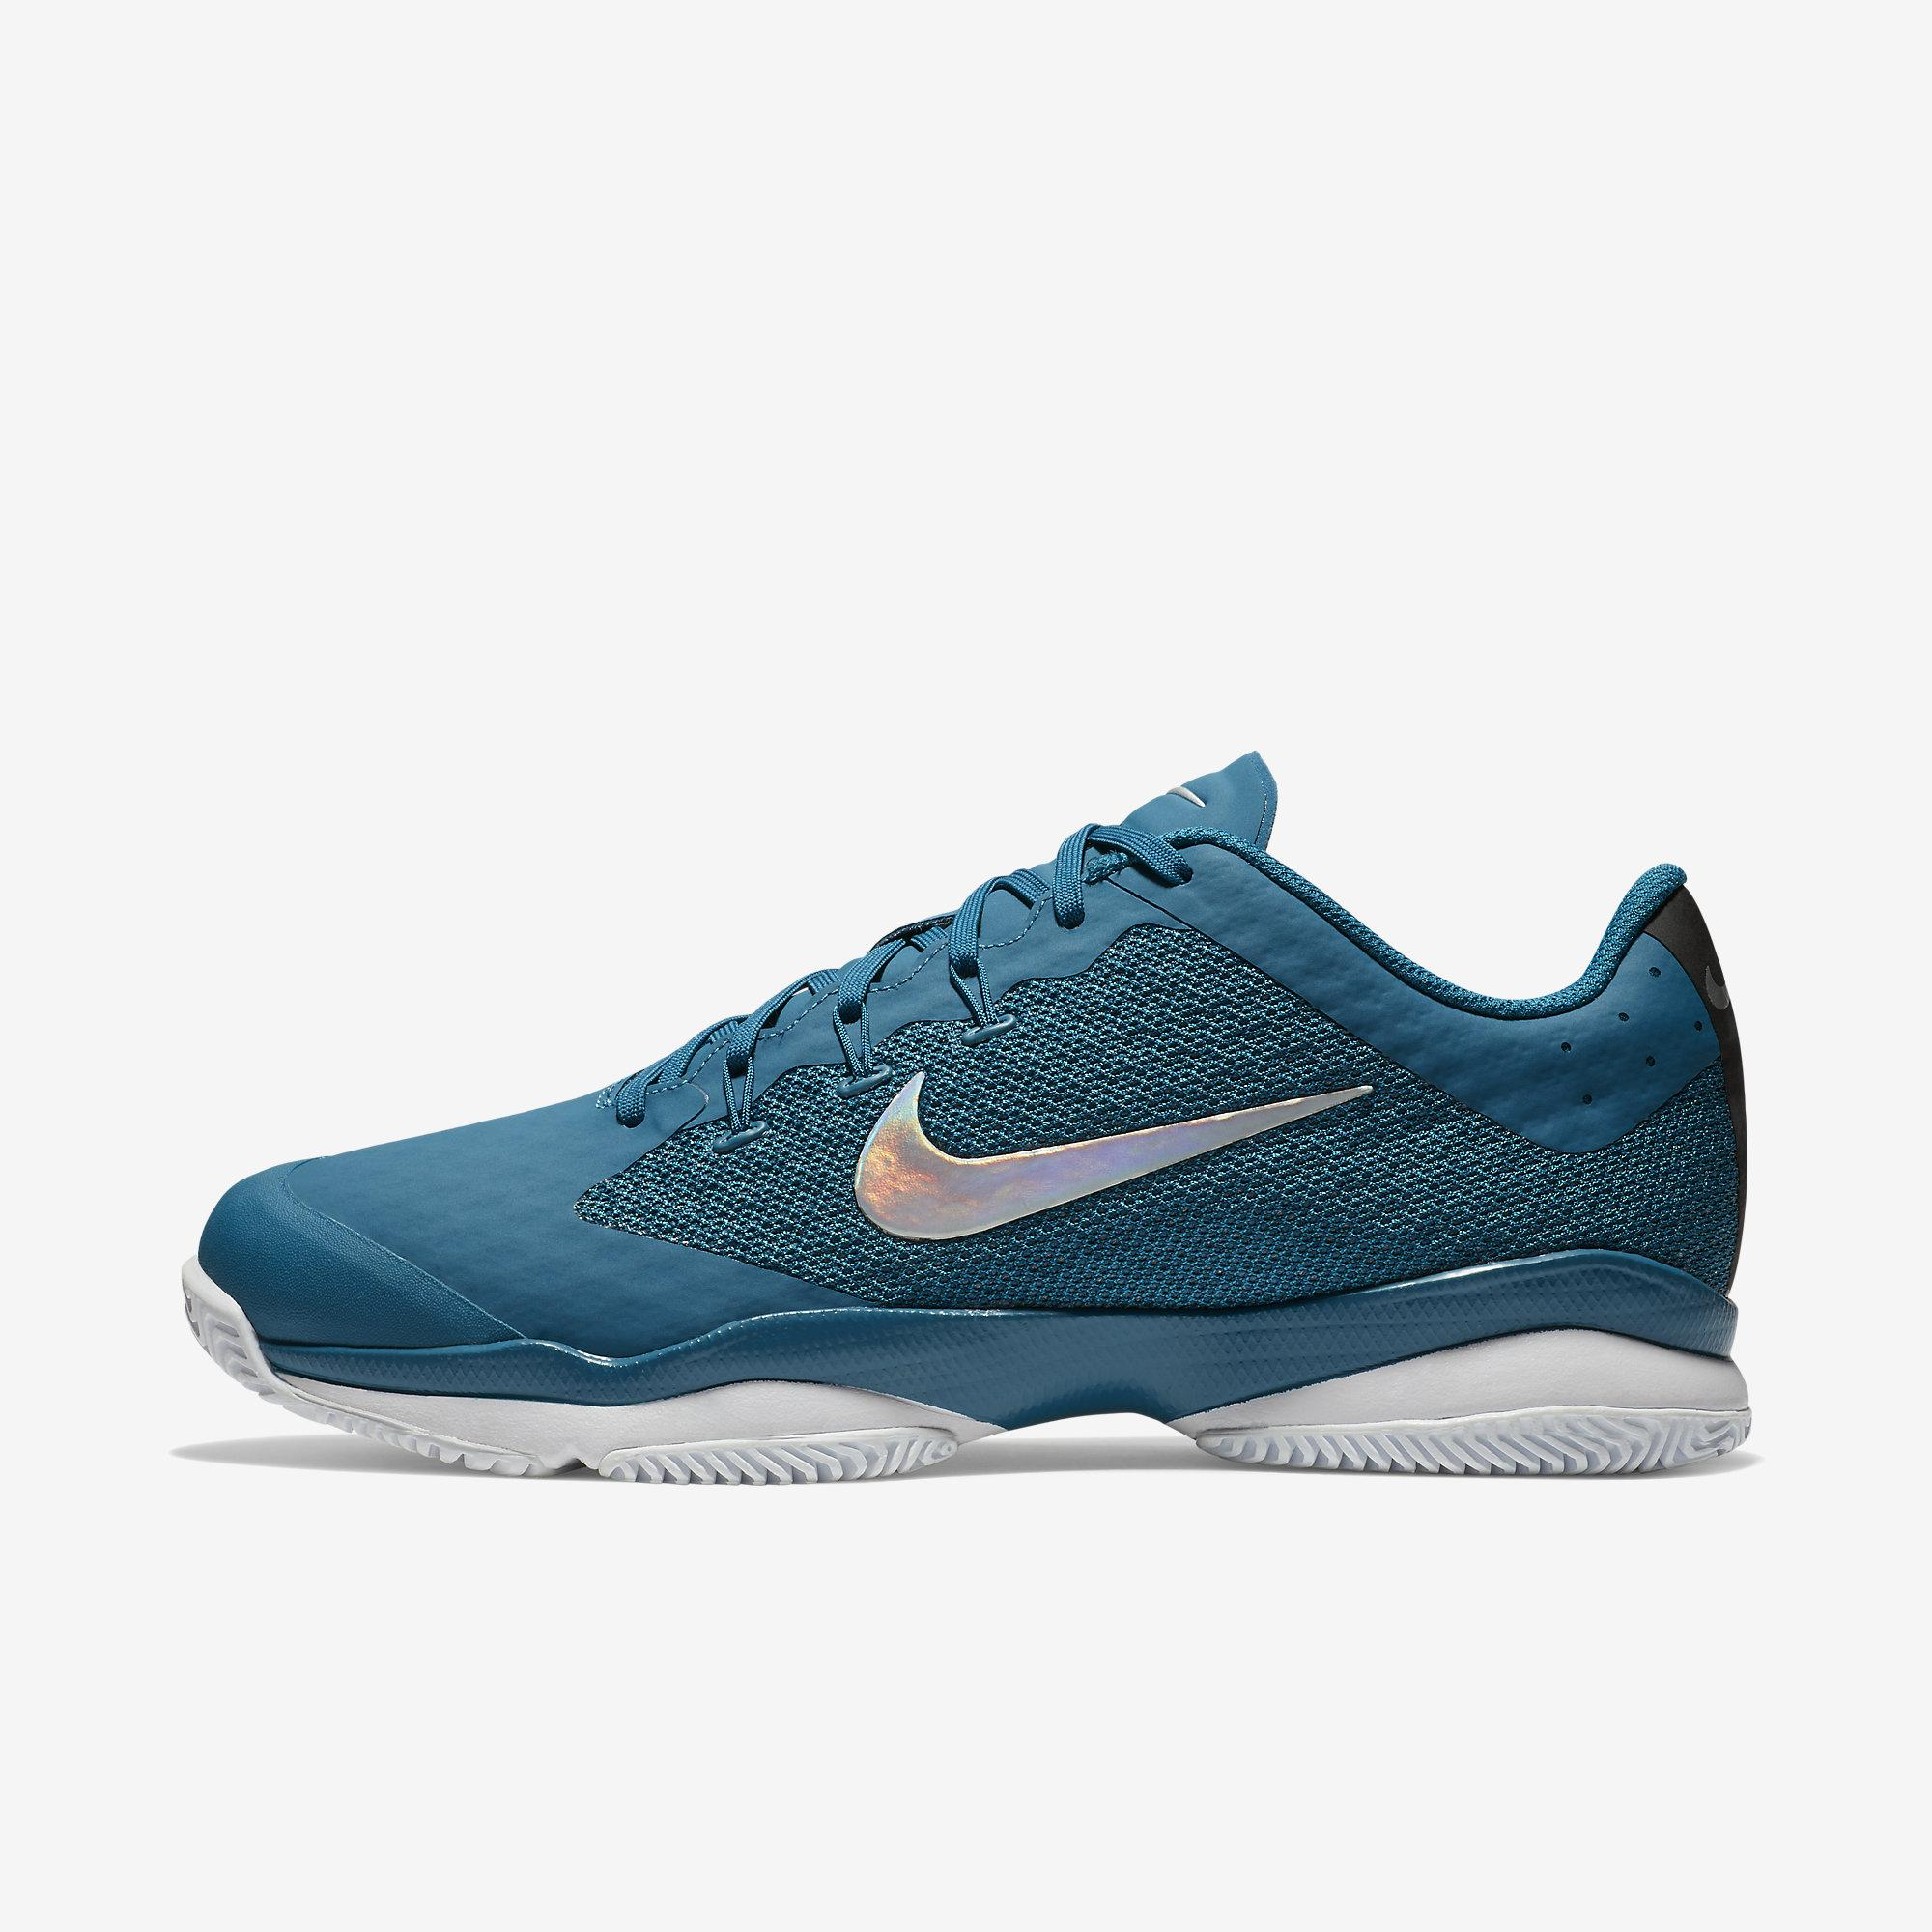 00264376ce6c Nike Mens Air Zoom Ultra Tennis Shoes - Green Abyss - Tennisnuts.com